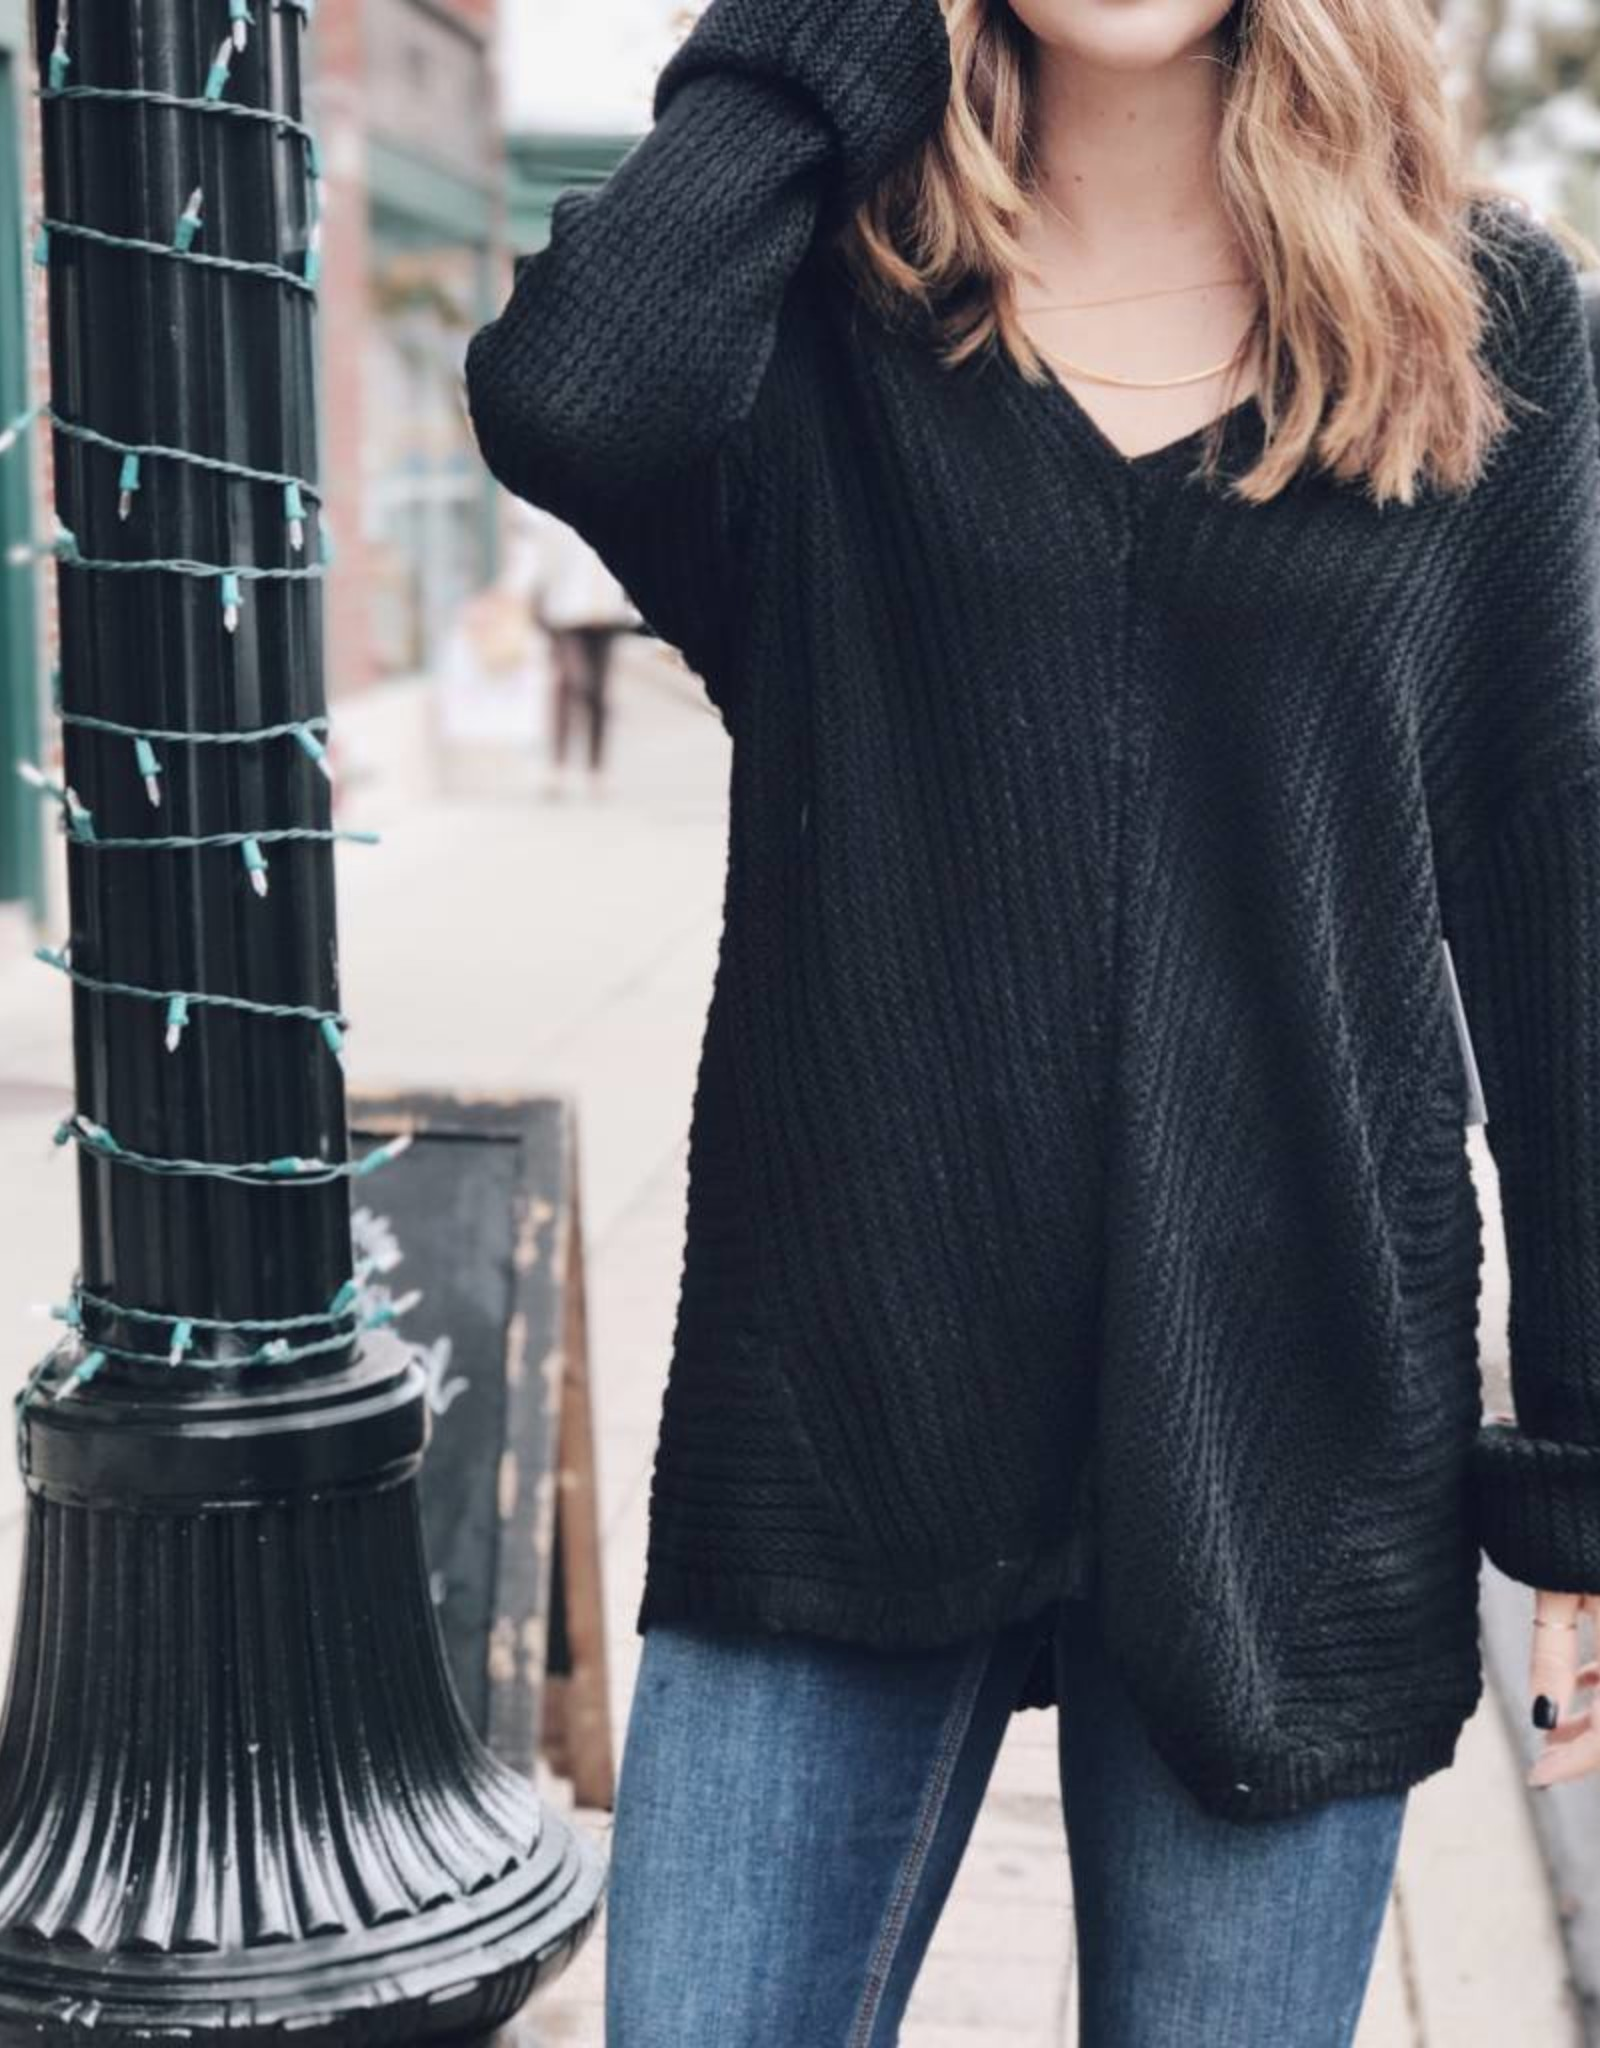 PPLA Vidal Knit Sweater